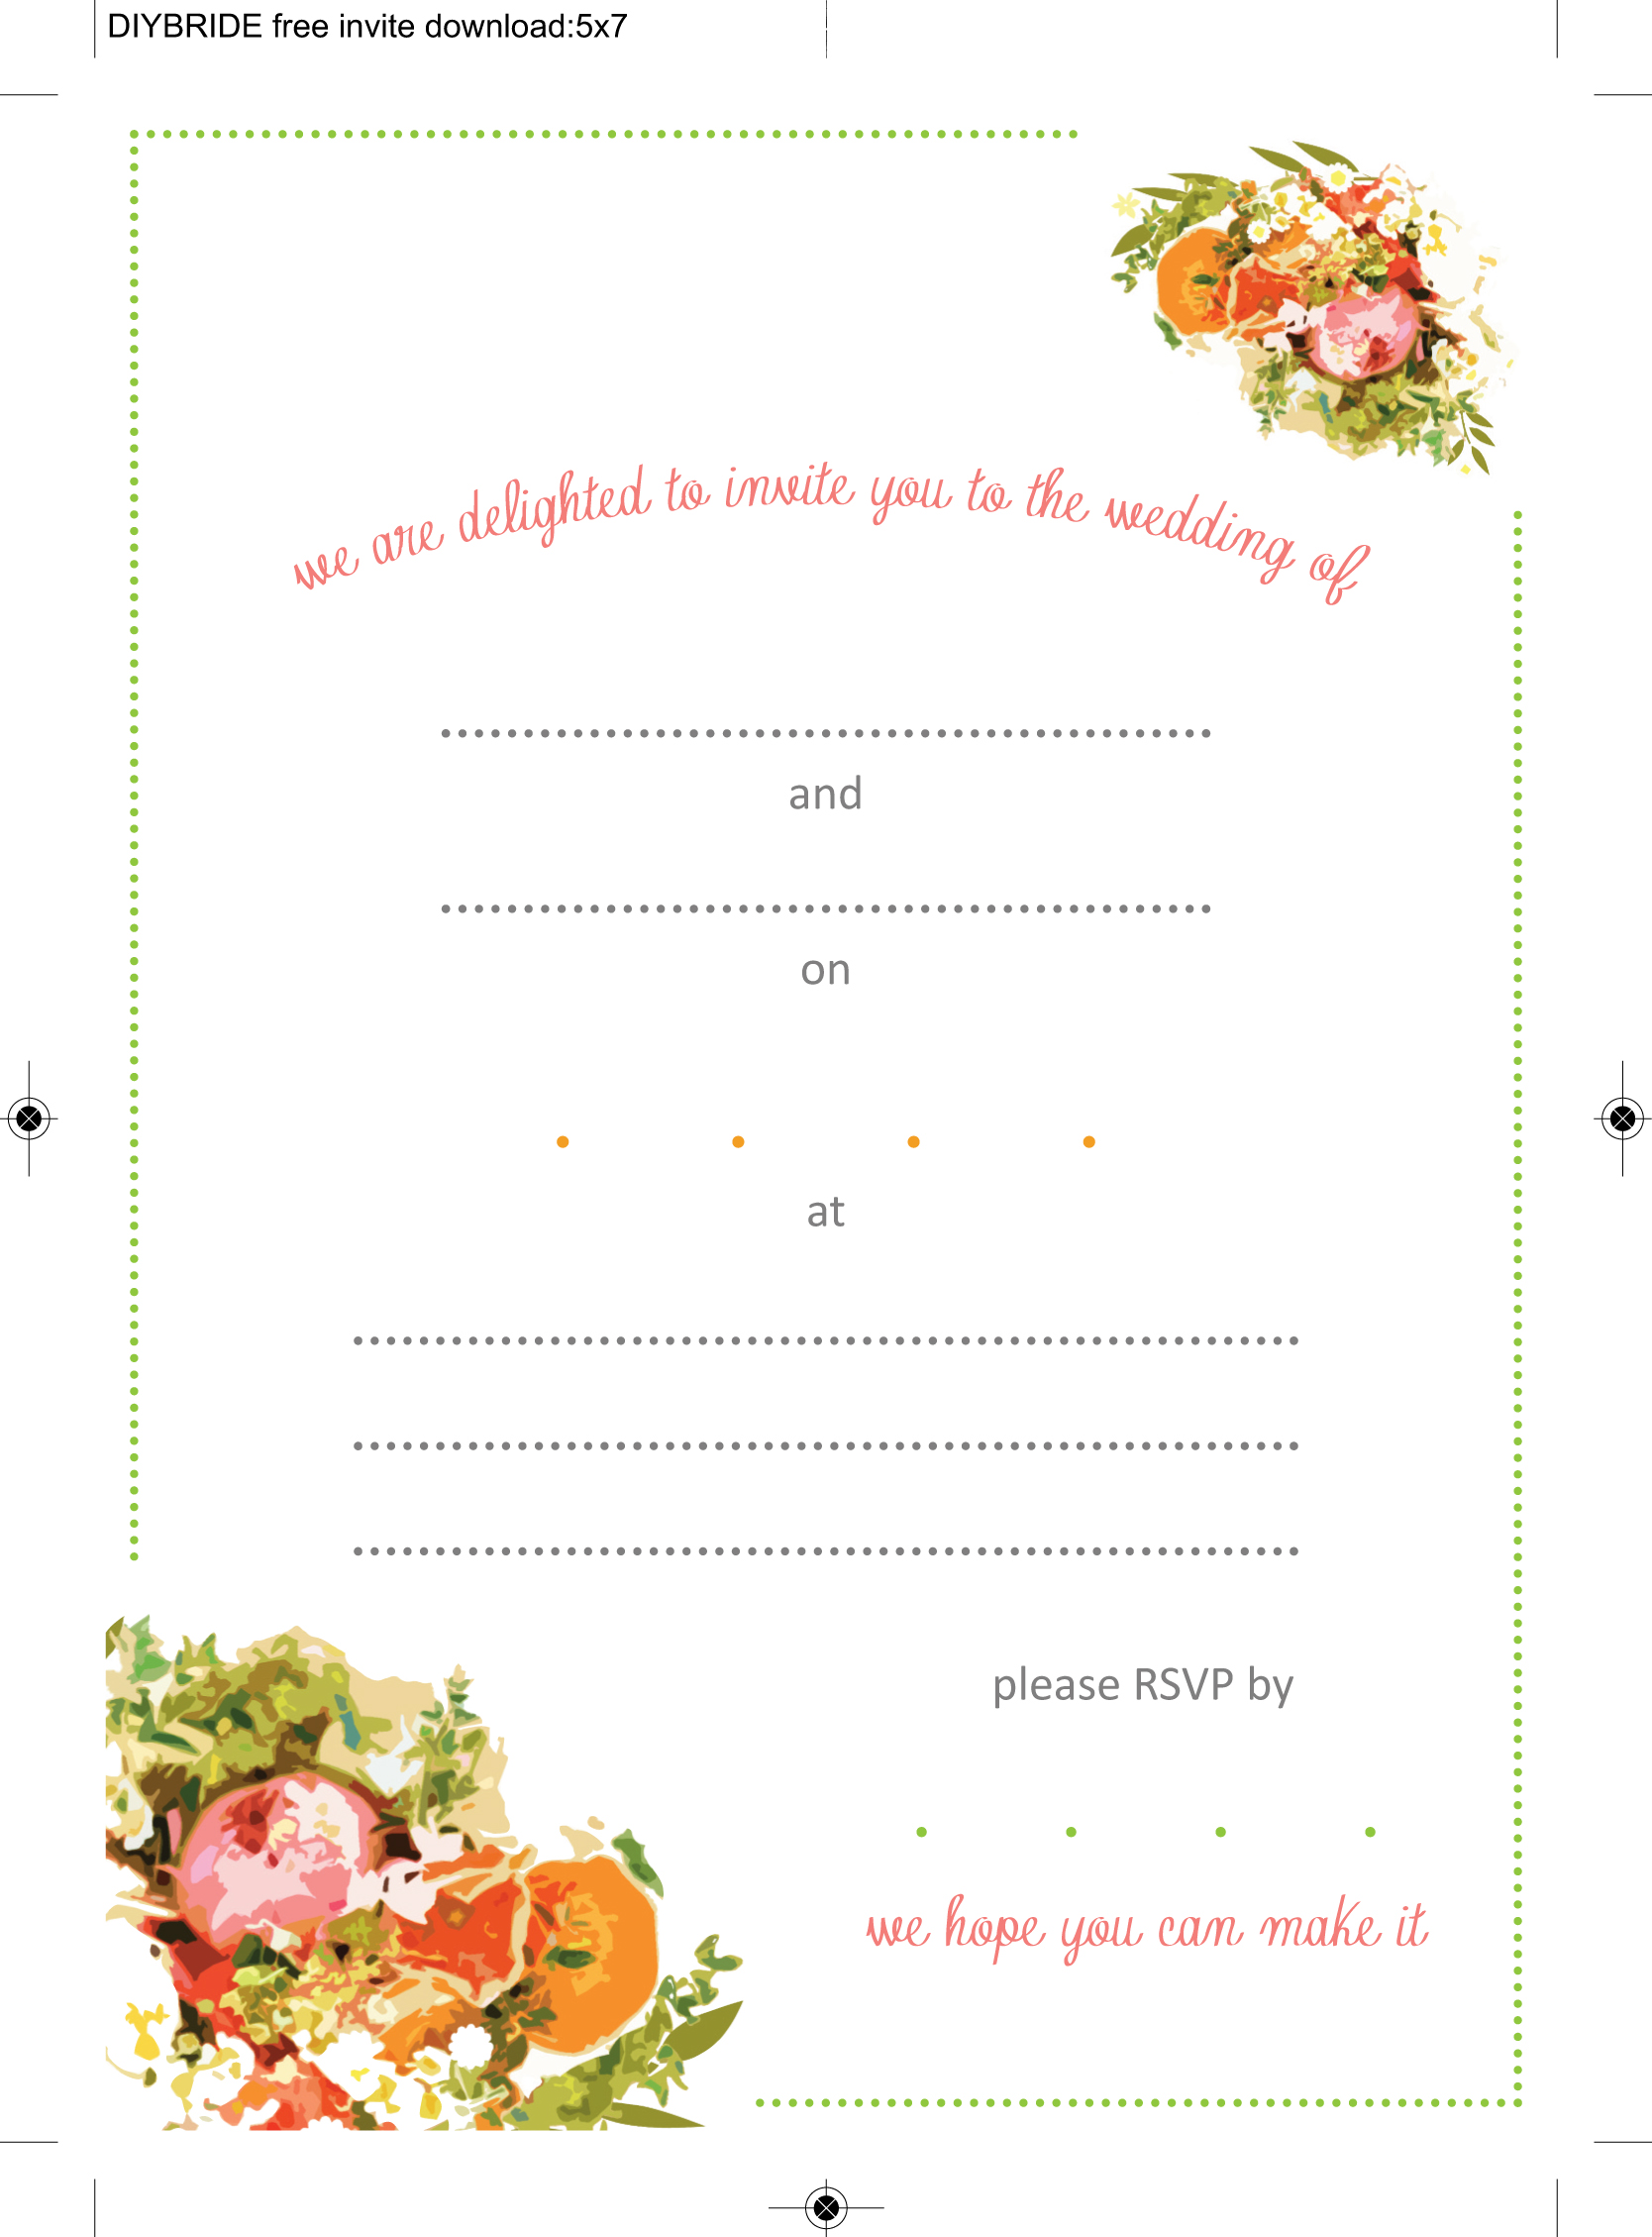 Wedding Invitation Templates That Are Cute And Easy to Make – Free Invitation Design Templates